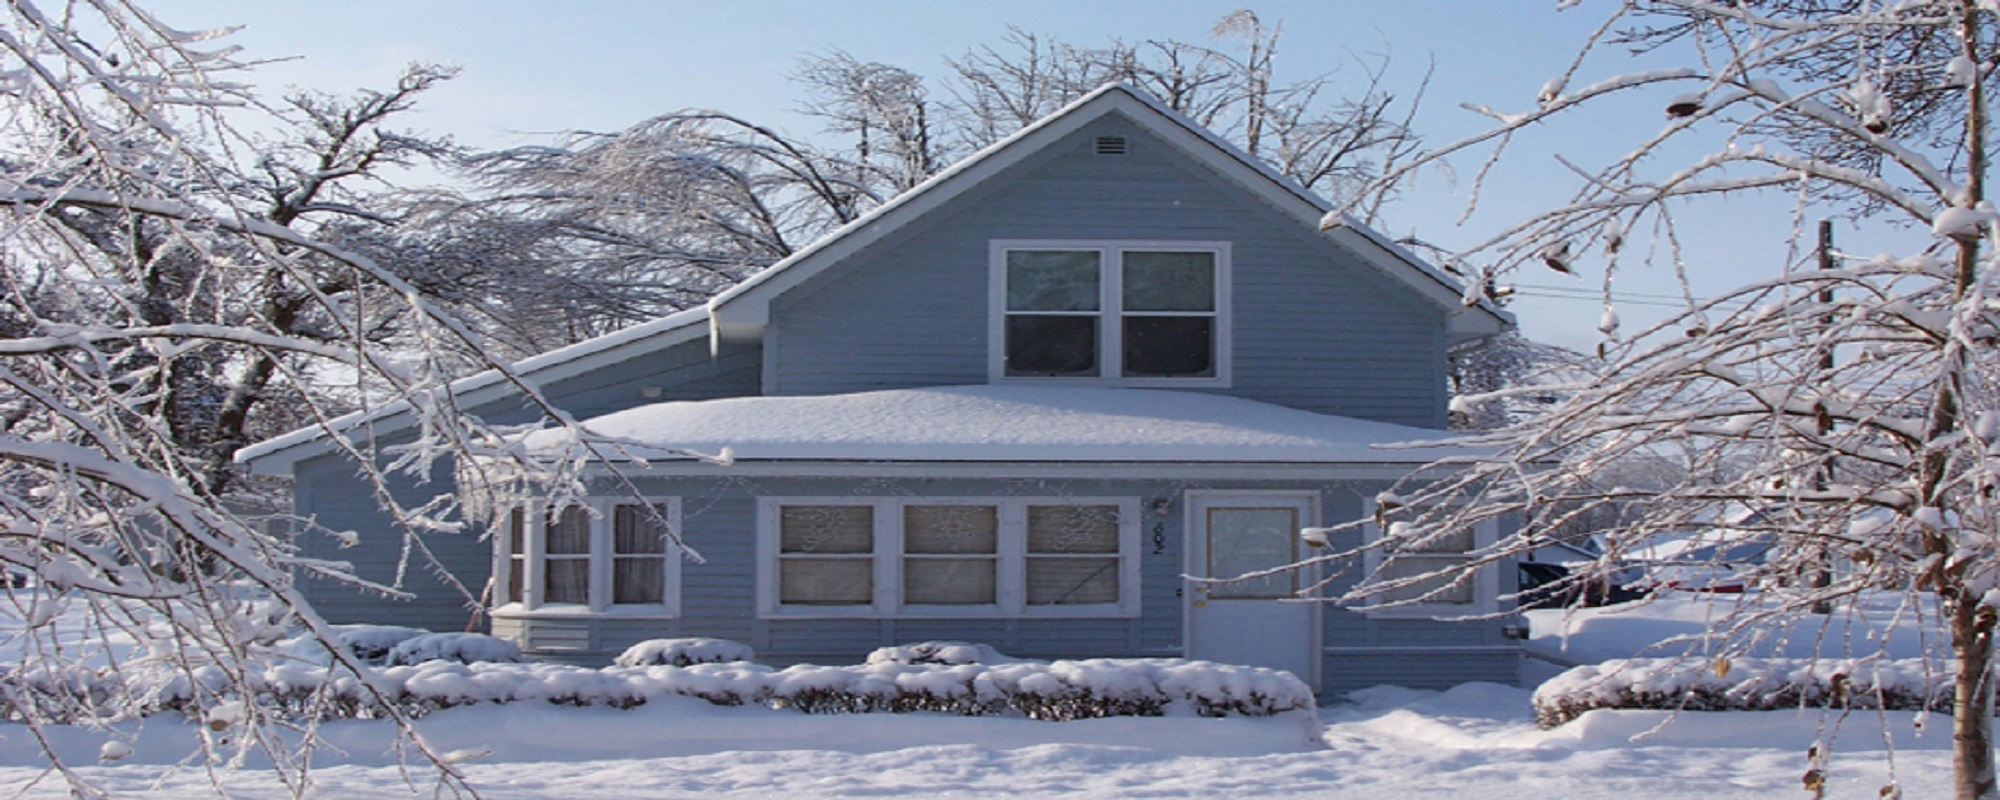 prevent damaged roof this winter